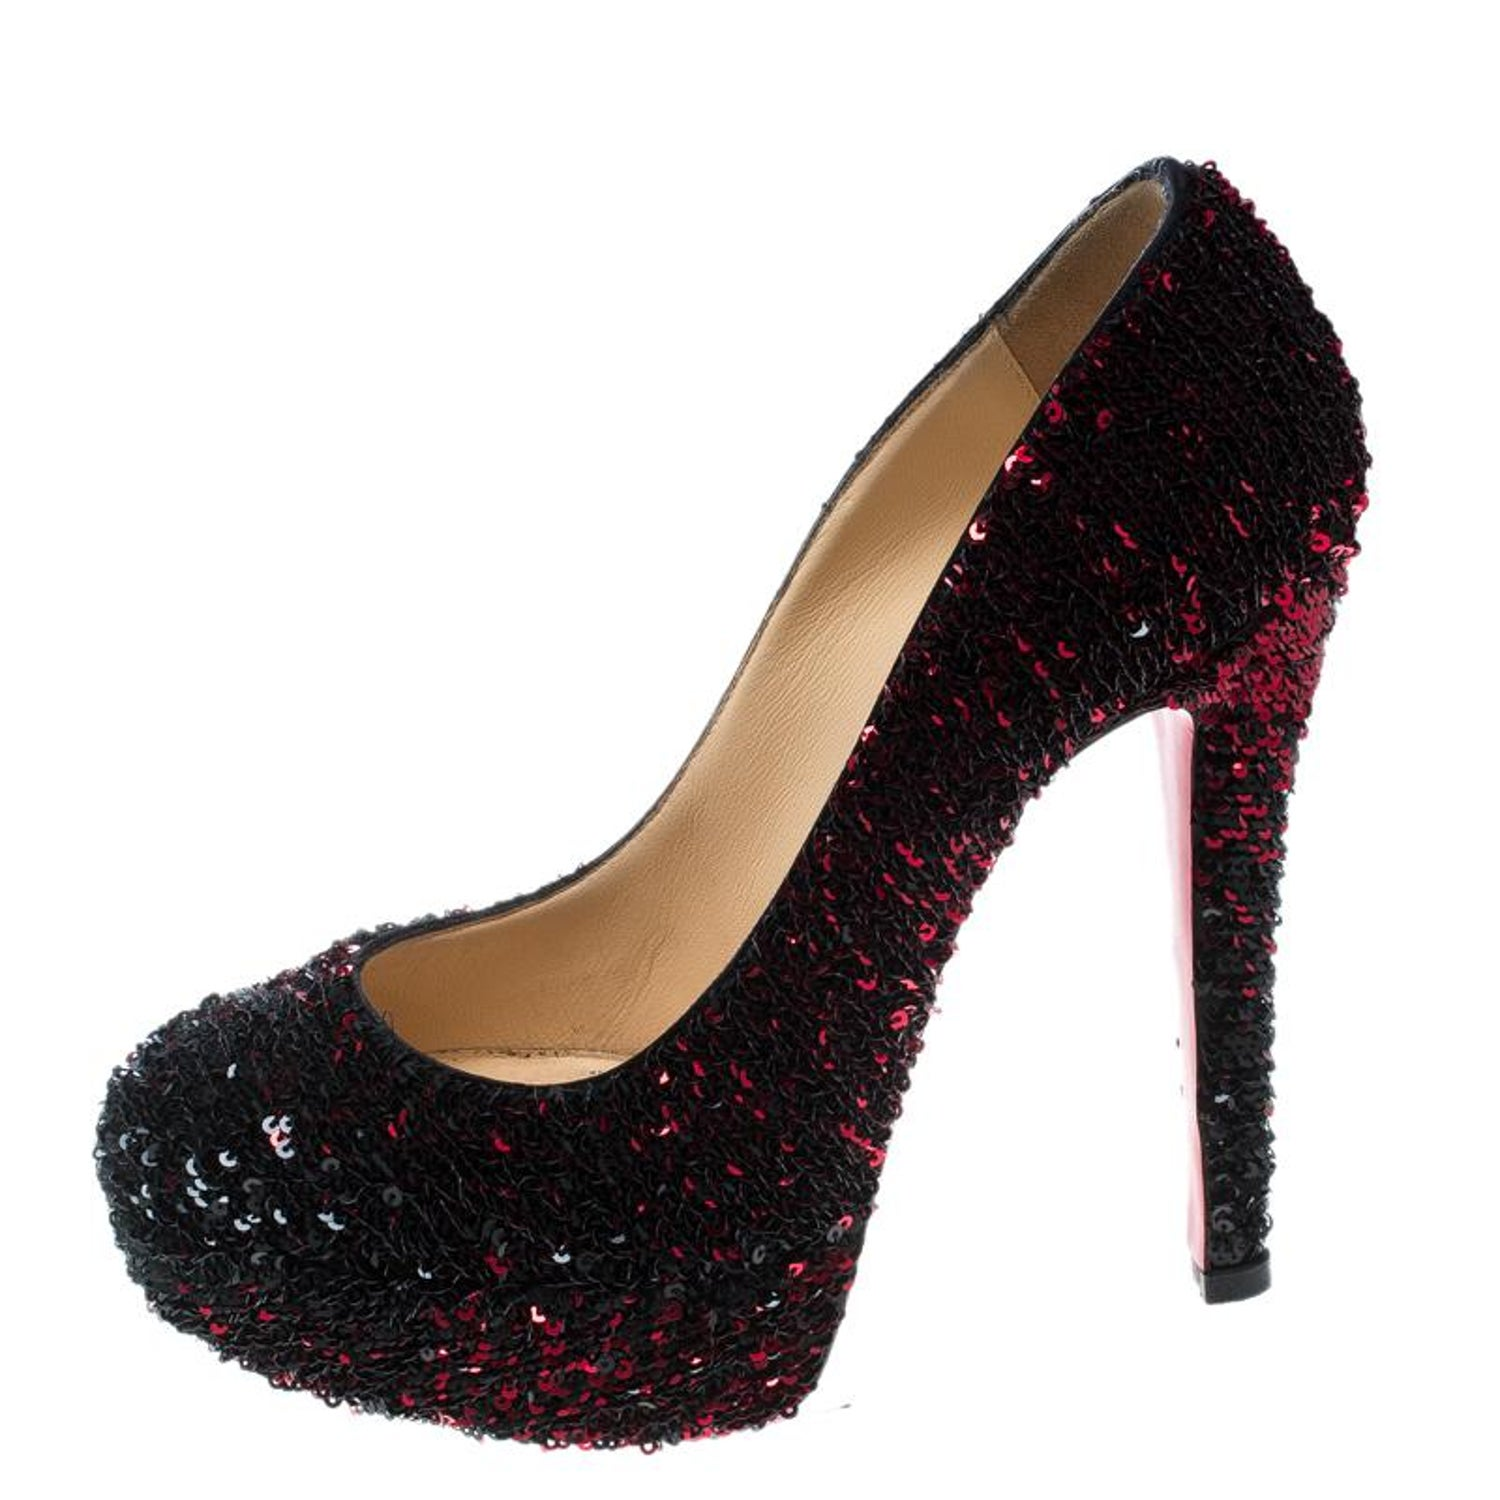 5a7e2bc64b54 Christian Louboutin Two Tone Sequins Bianca Platform Pumps Size 36 For Sale  at 1stdibs